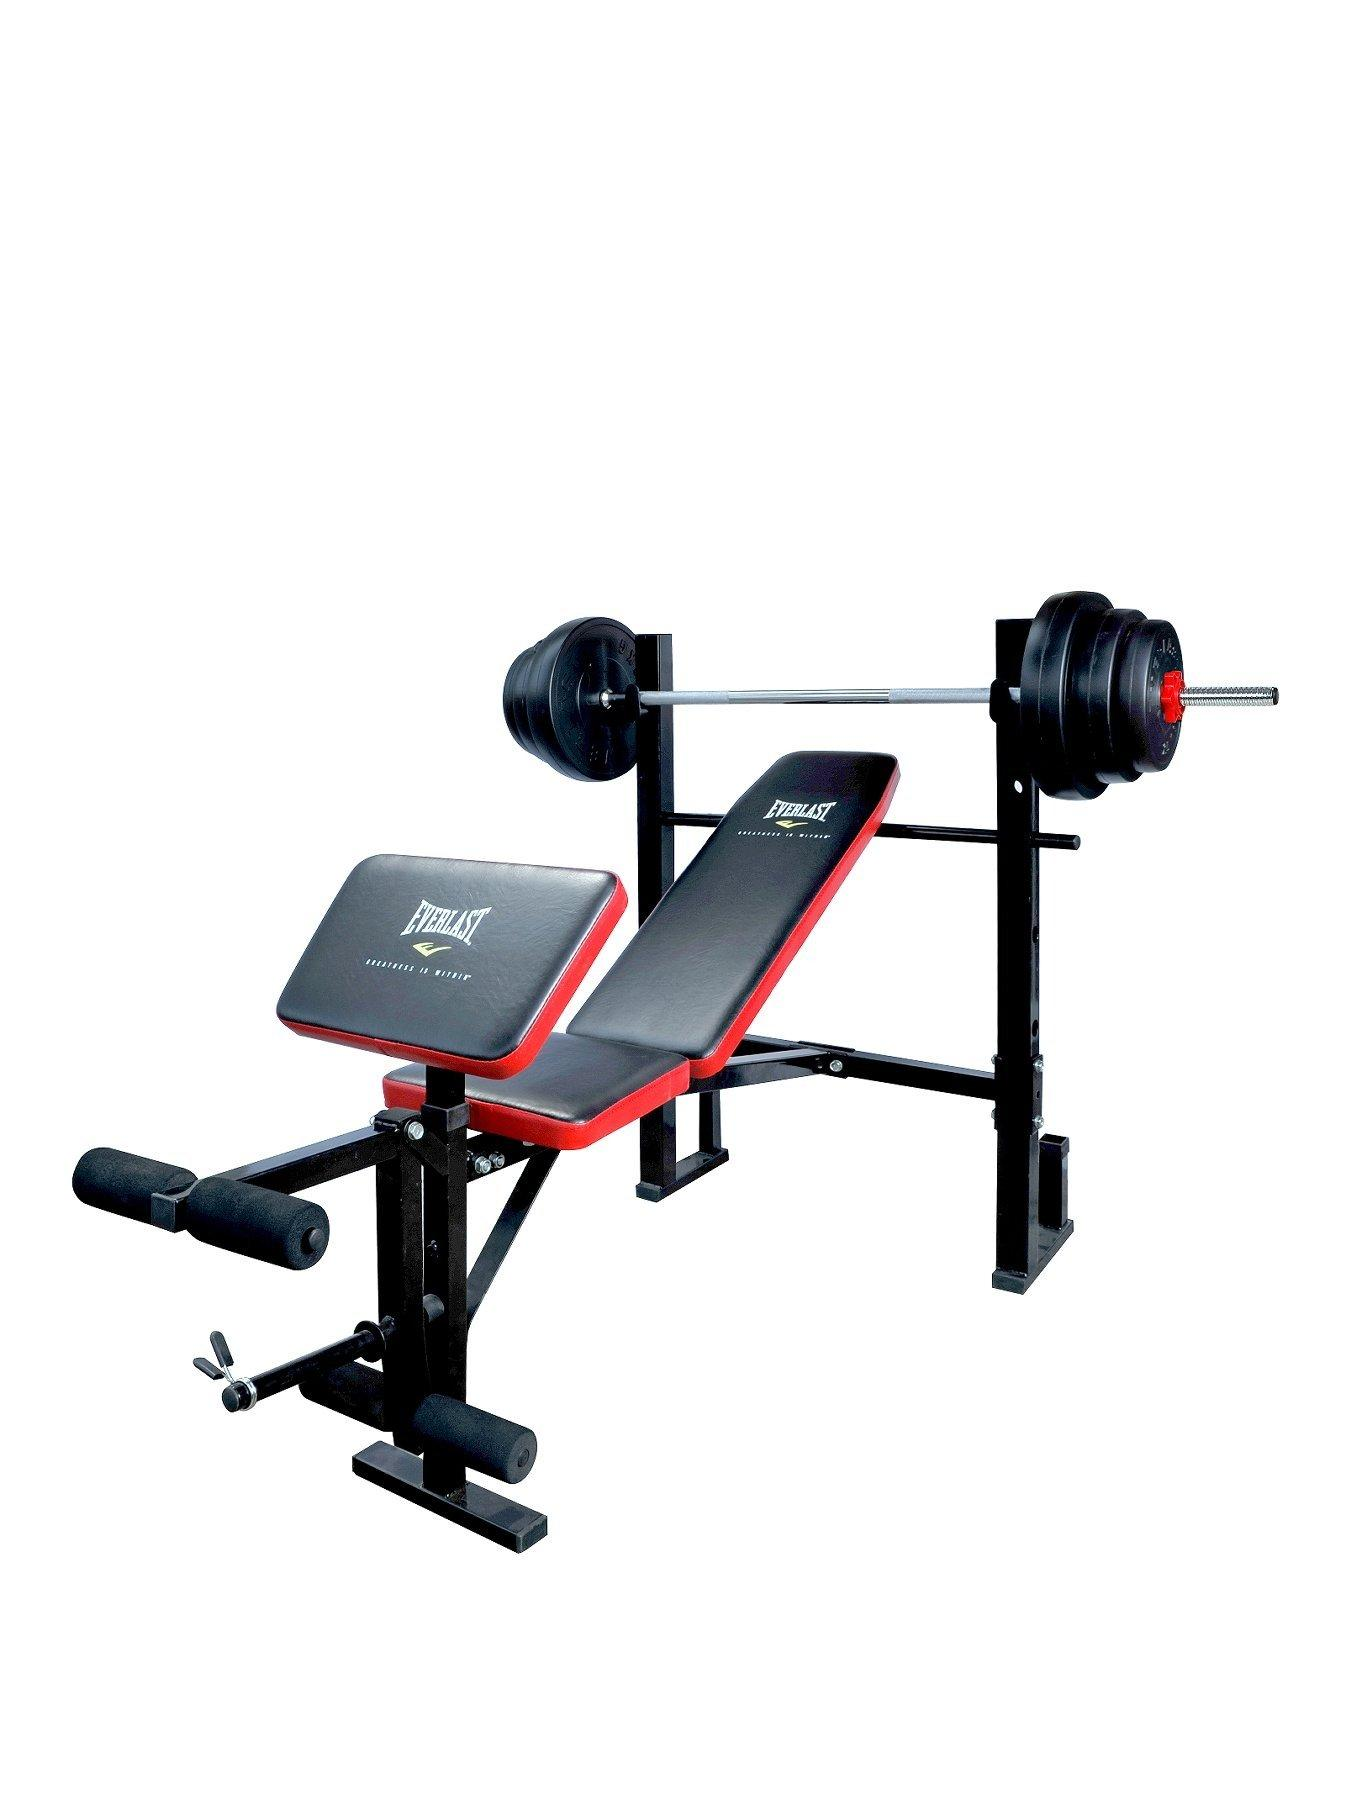 Olympic Bench Set with Weights | Used Olympic Weight Bench | Craigslist Weight Bench